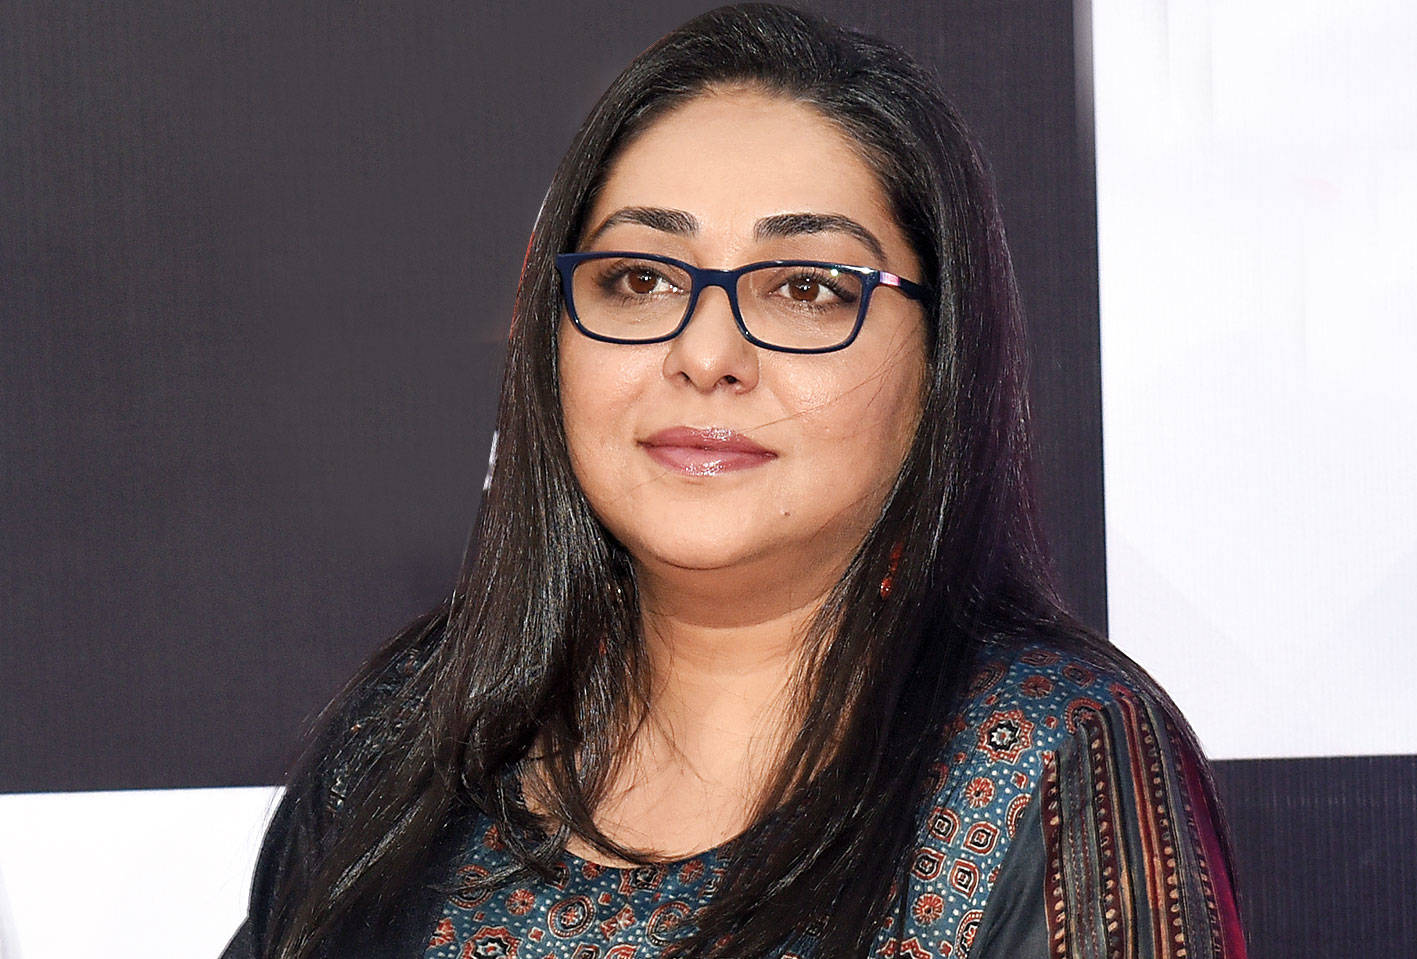 Meghna Gulzar will speak on the topic 'If we could widen the scope from just gender and women-centric films'